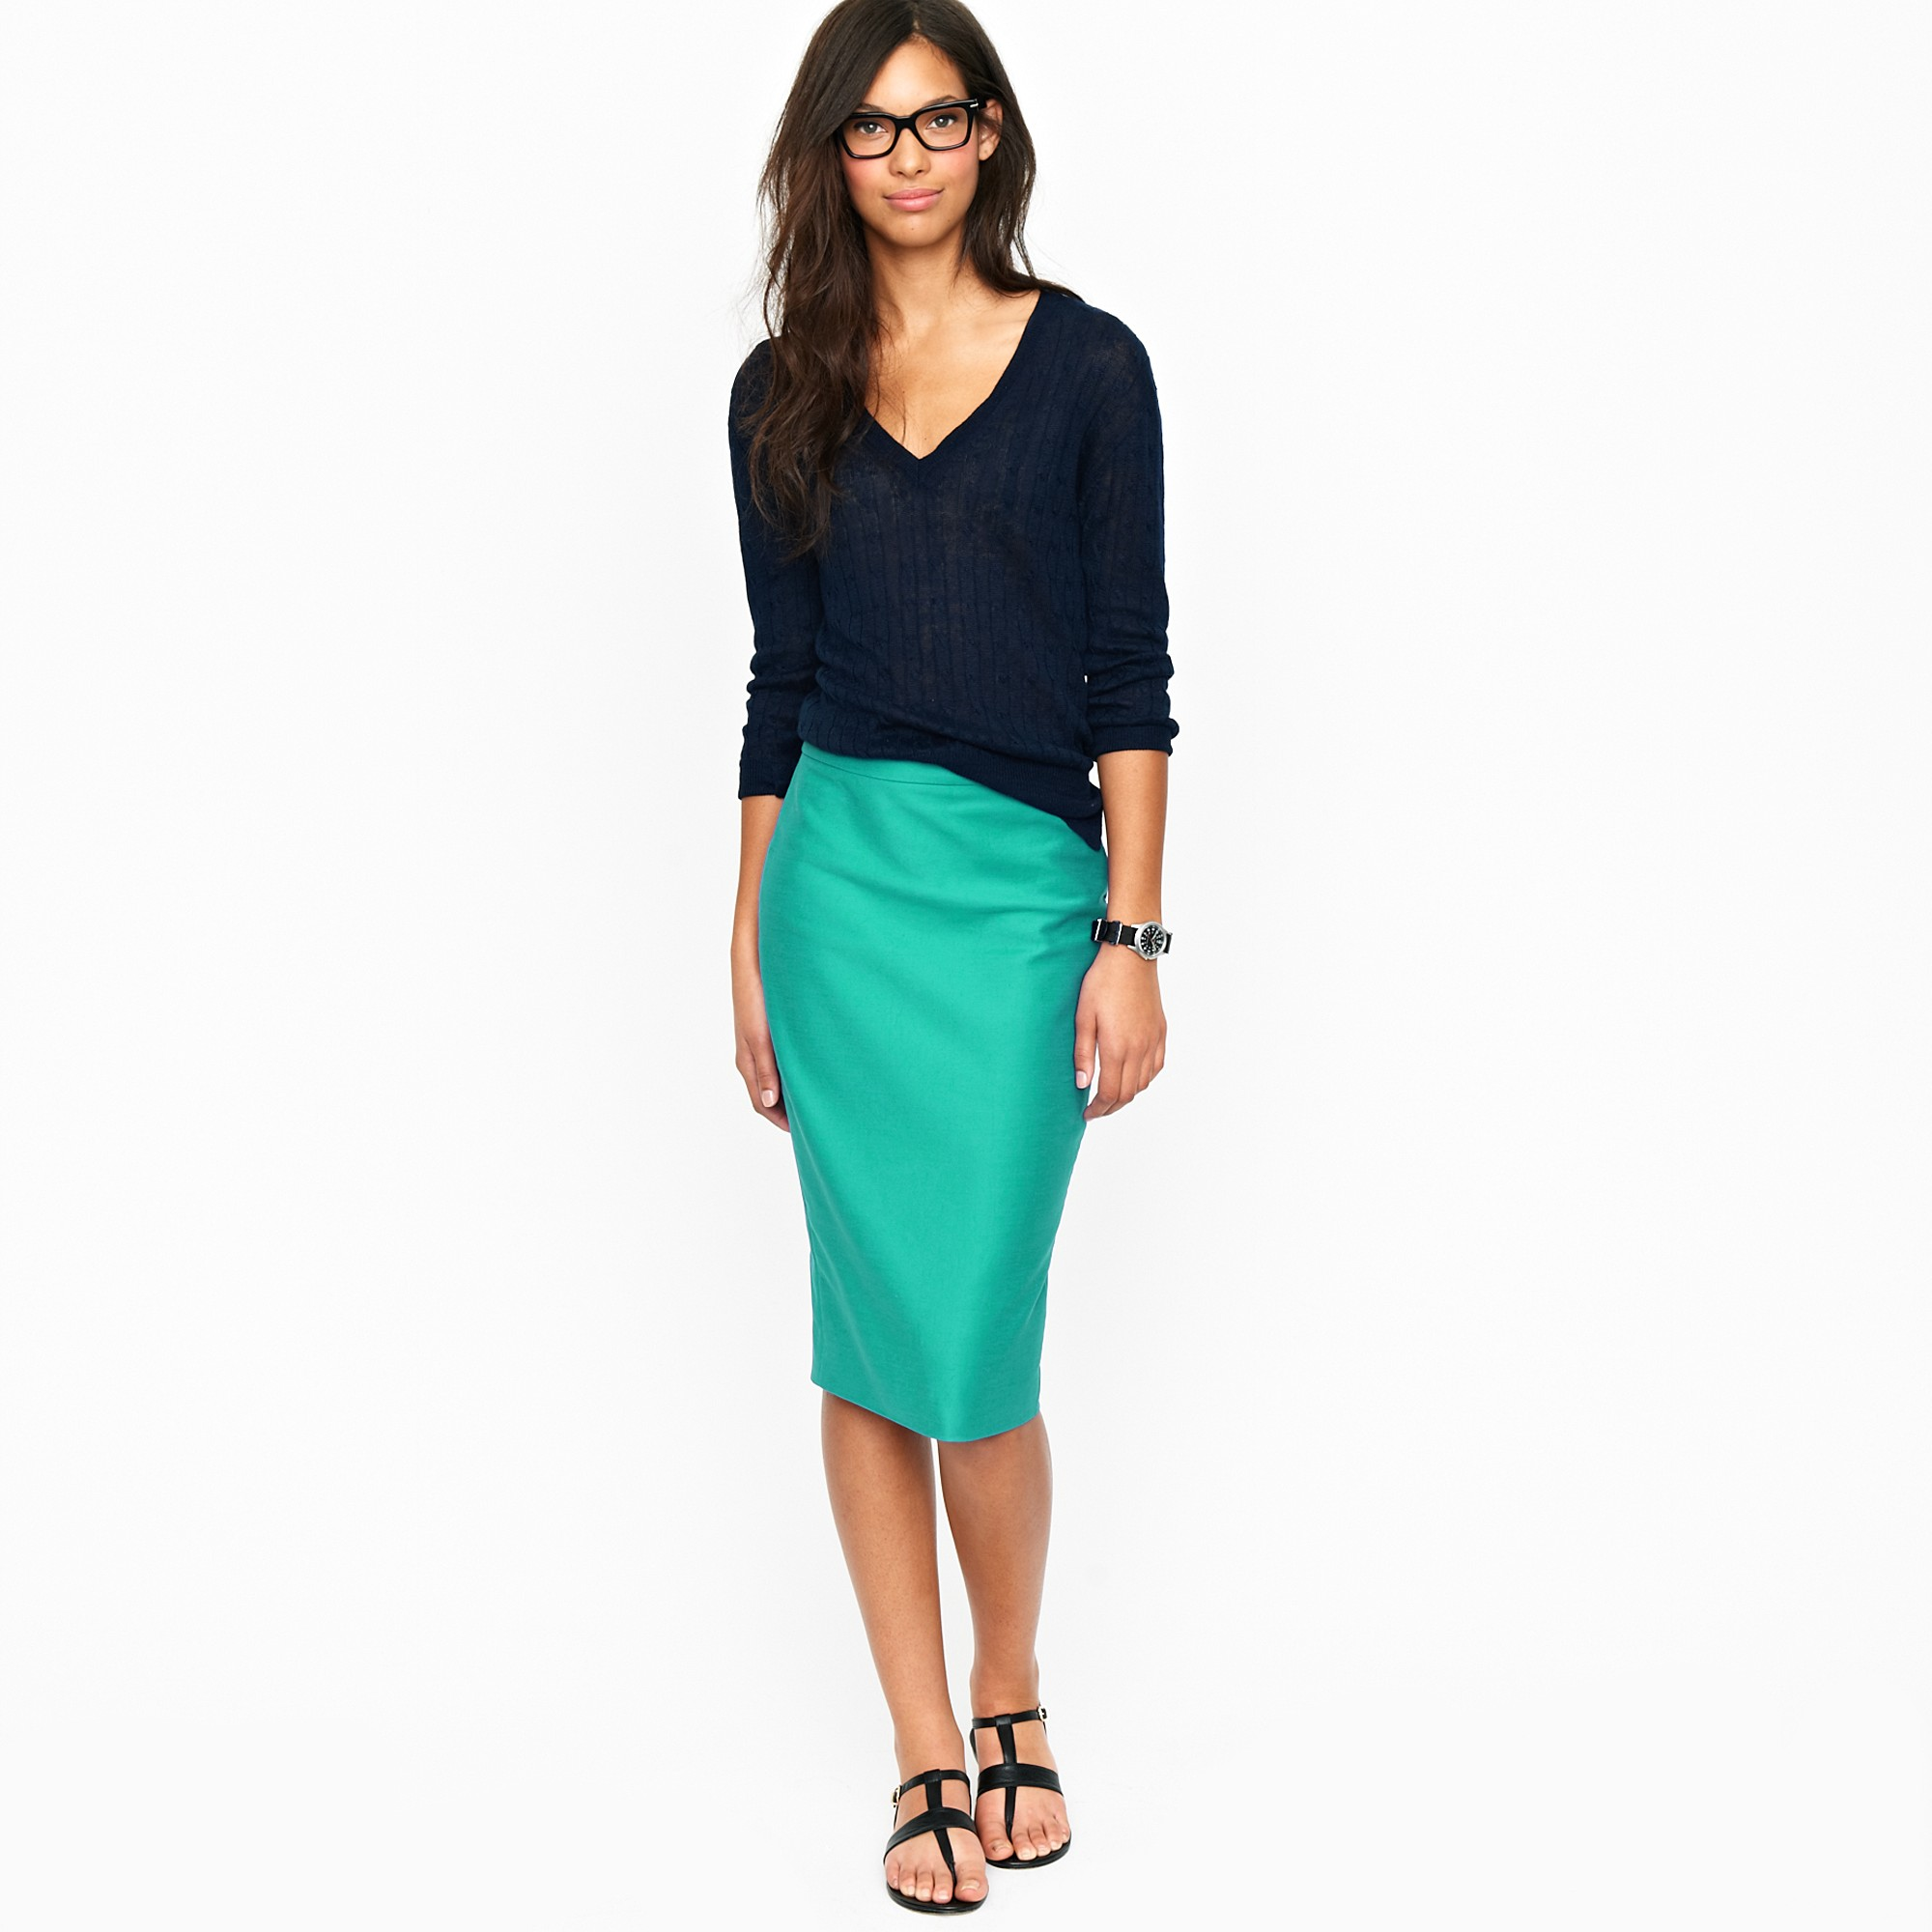 J.crew Long No. 2 Pencil Skirt in Double-serge Cotton in Green | Lyst